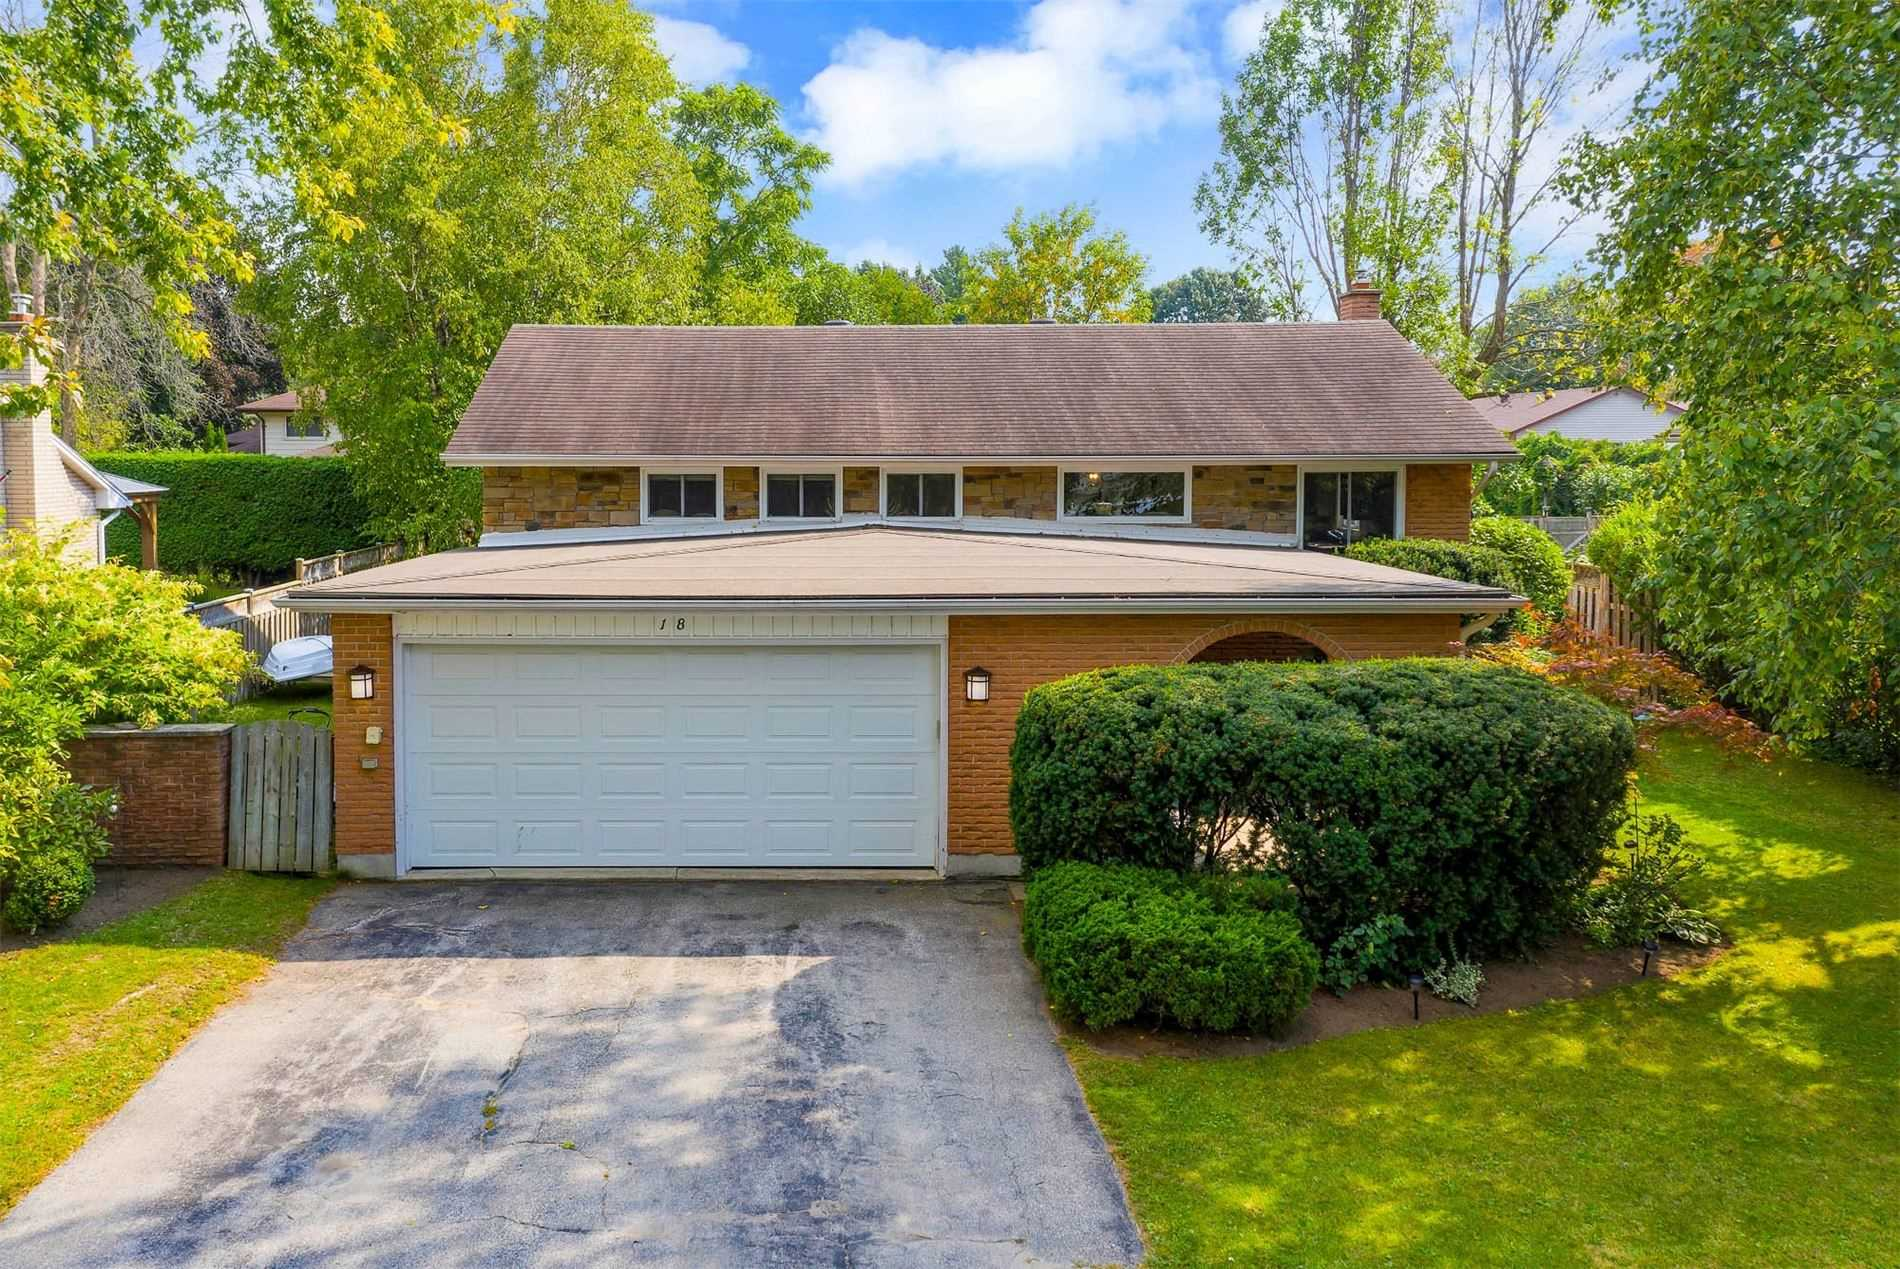 Detached house For Sale In Collingwood